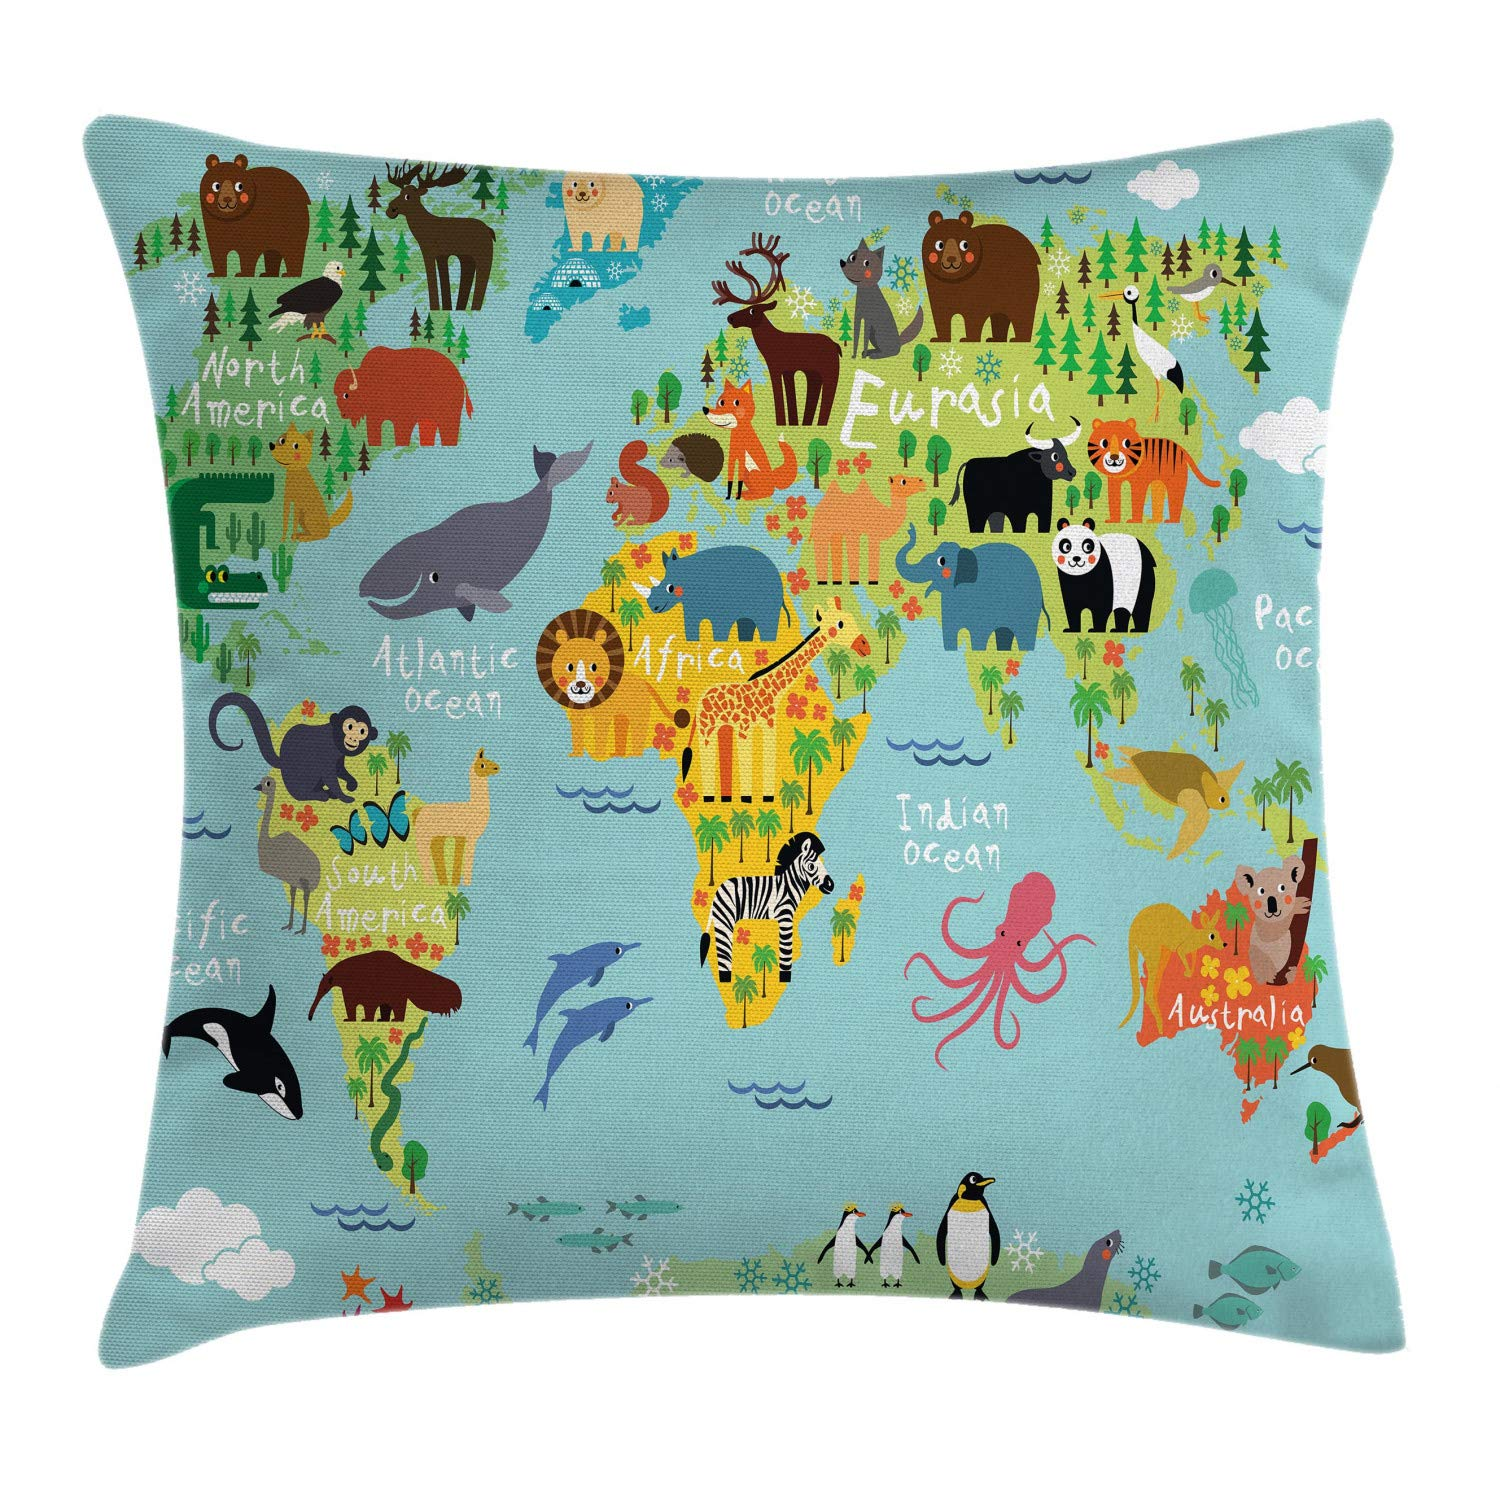 Ambesonne Wanderlust Throw Pillow Cushion Cover, Animal Map of The World for Children Kids Cartoon Mountains Forests, Decorative Square Accent Pillow Case, 26'' X 26'', Pale Blue by Ambesonne